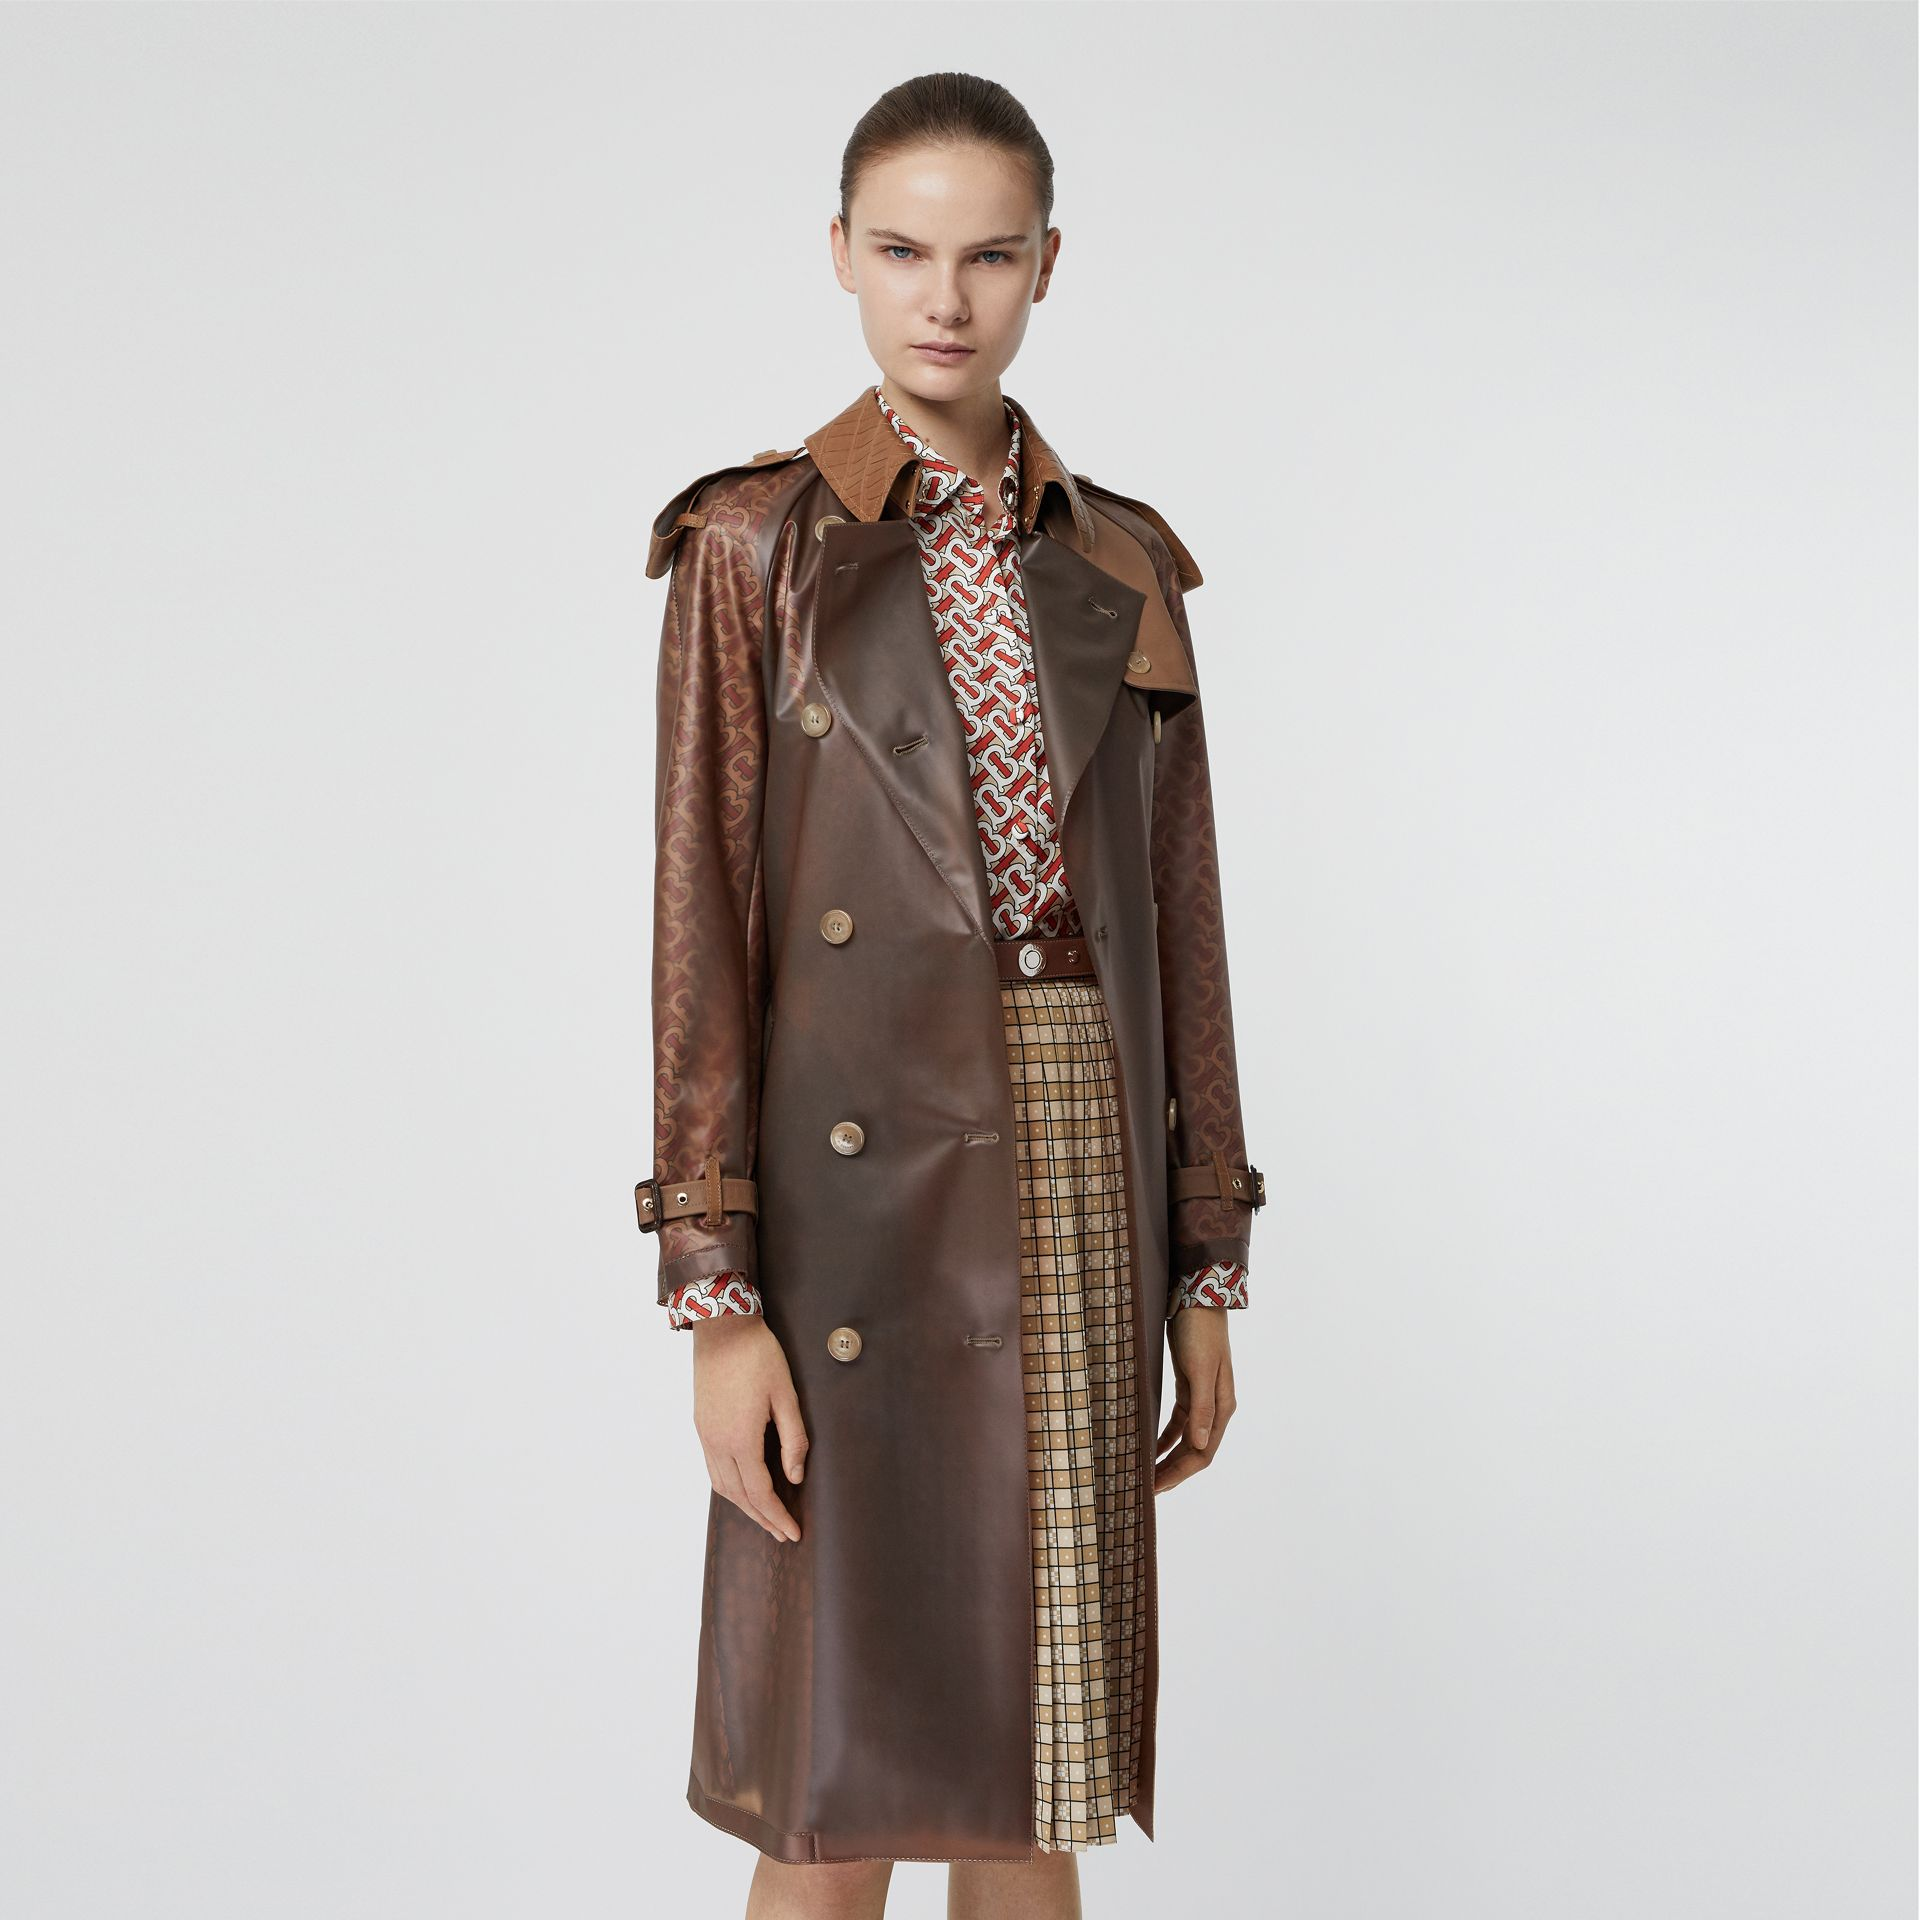 Leather Detail Showerproof Trench Coat in Flaxseed - Women | Burberry - gallery image 6